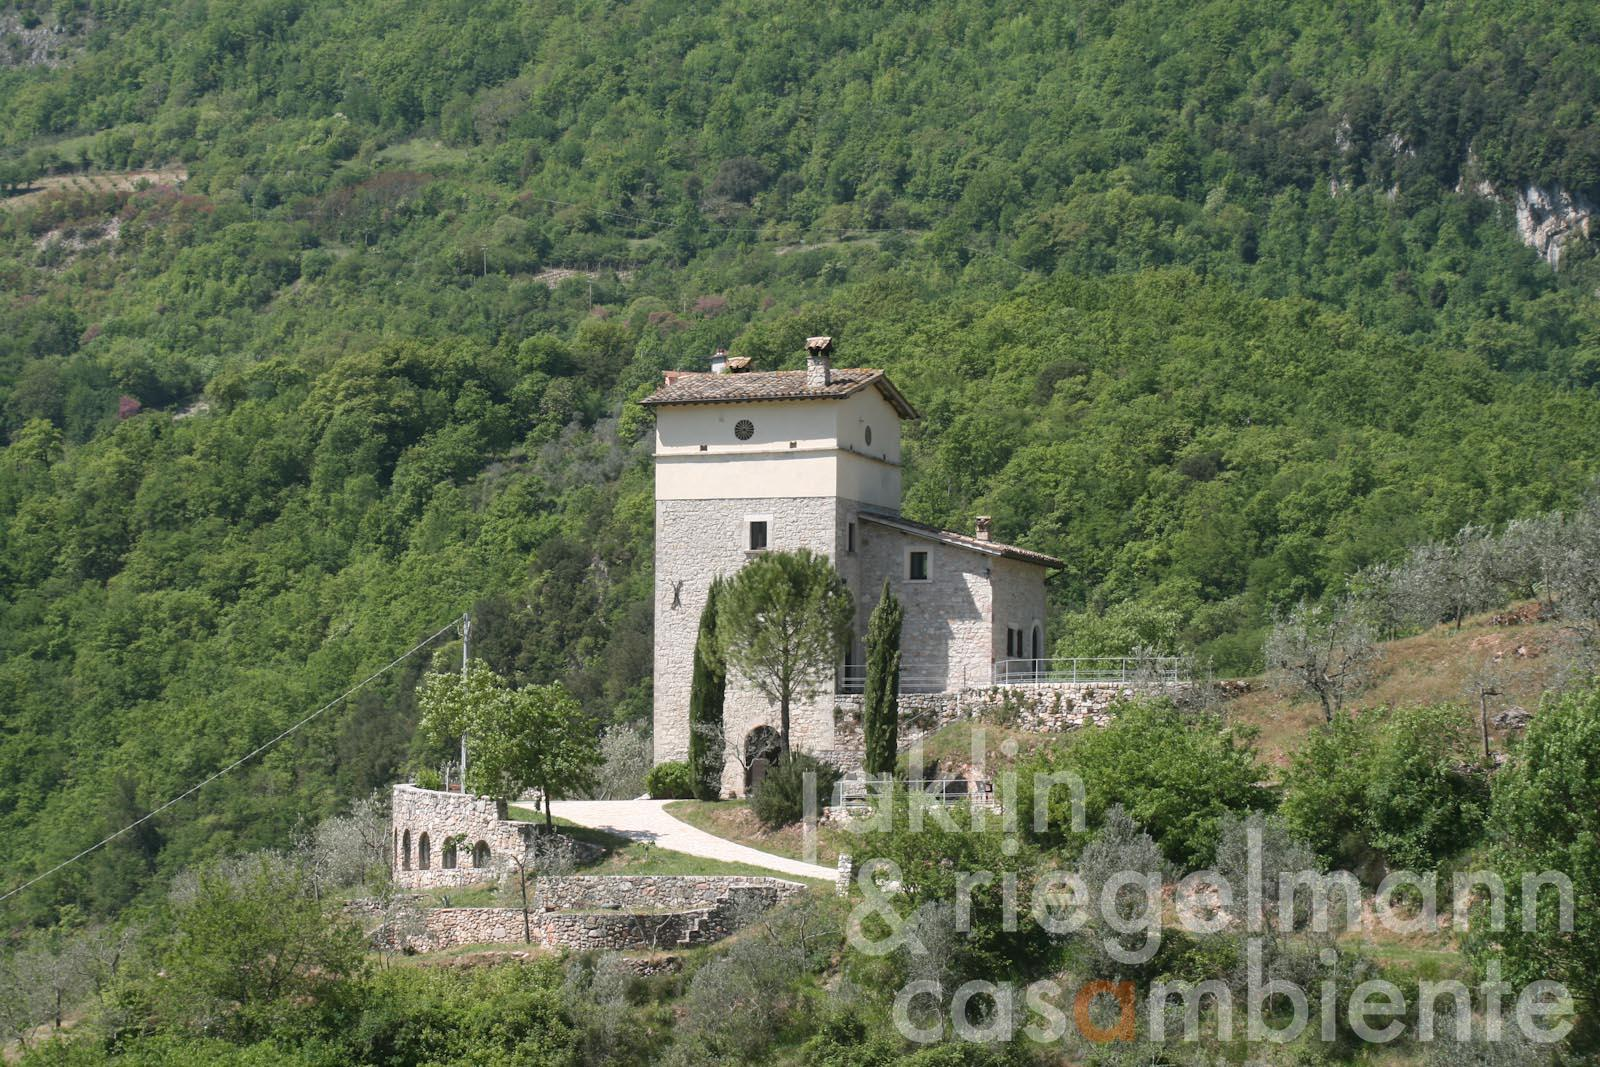 The restored watchtower in Umbria for sale